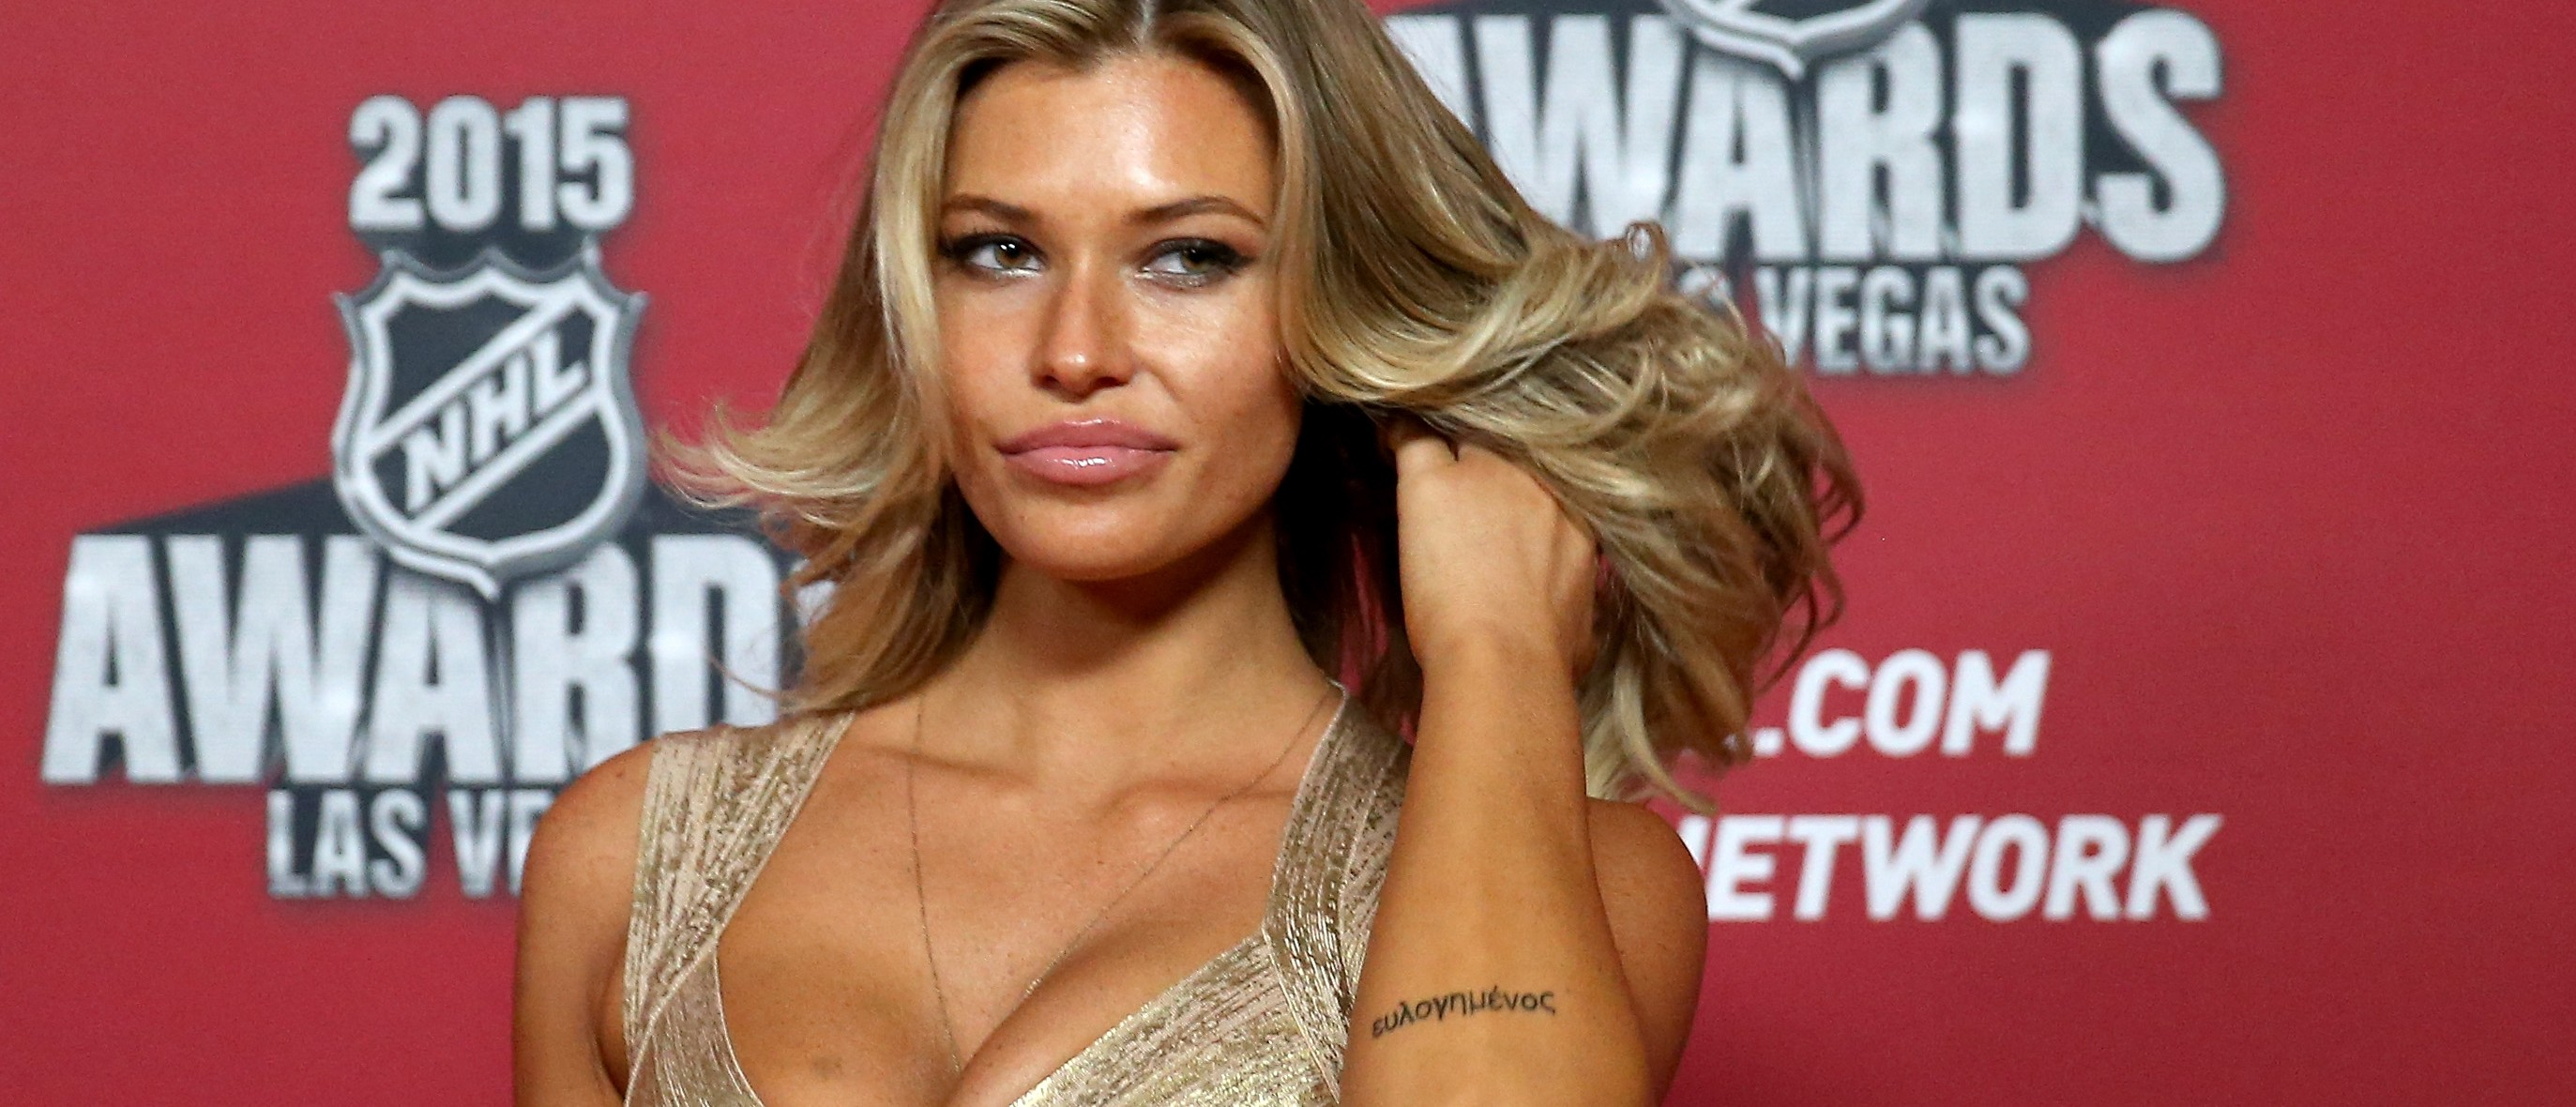 Video Samantha Hoopes naked (63 photo), Topless, Sideboobs, Twitter, braless 2019